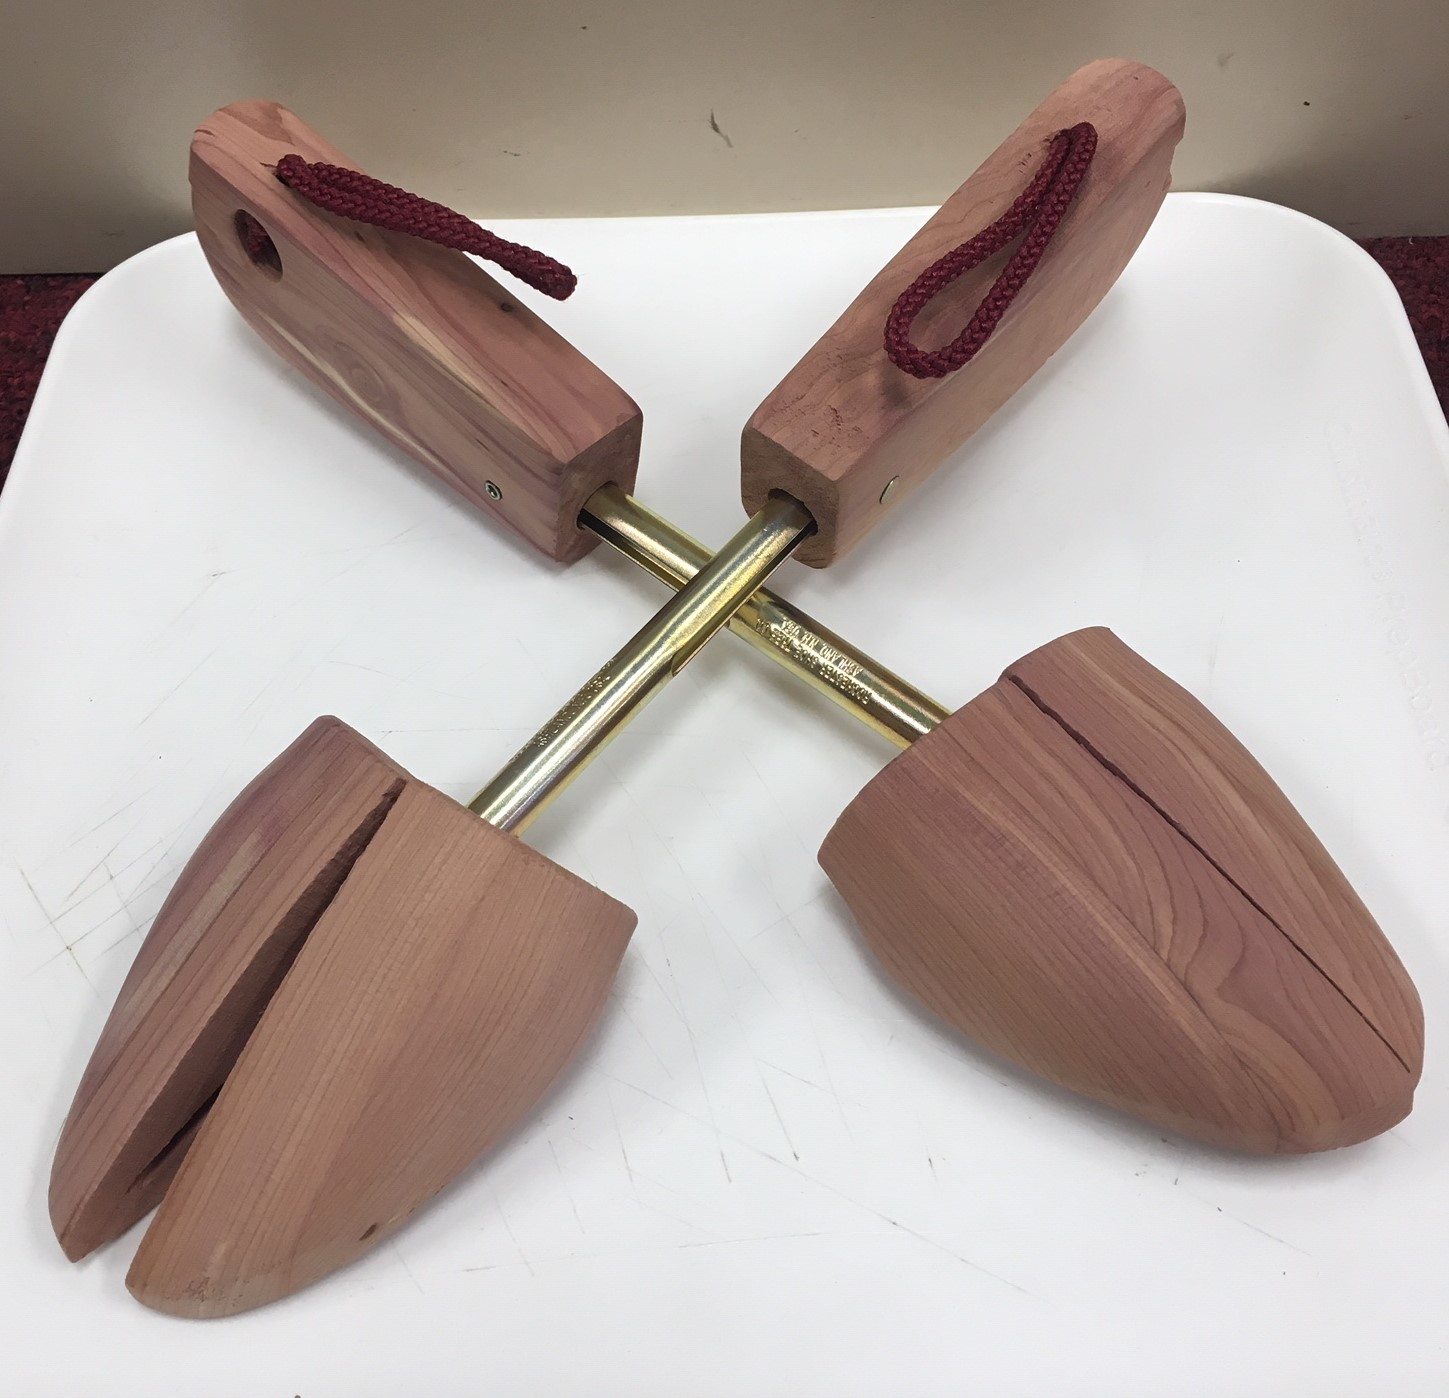 Barry's Jean Cedar Shoe Trees